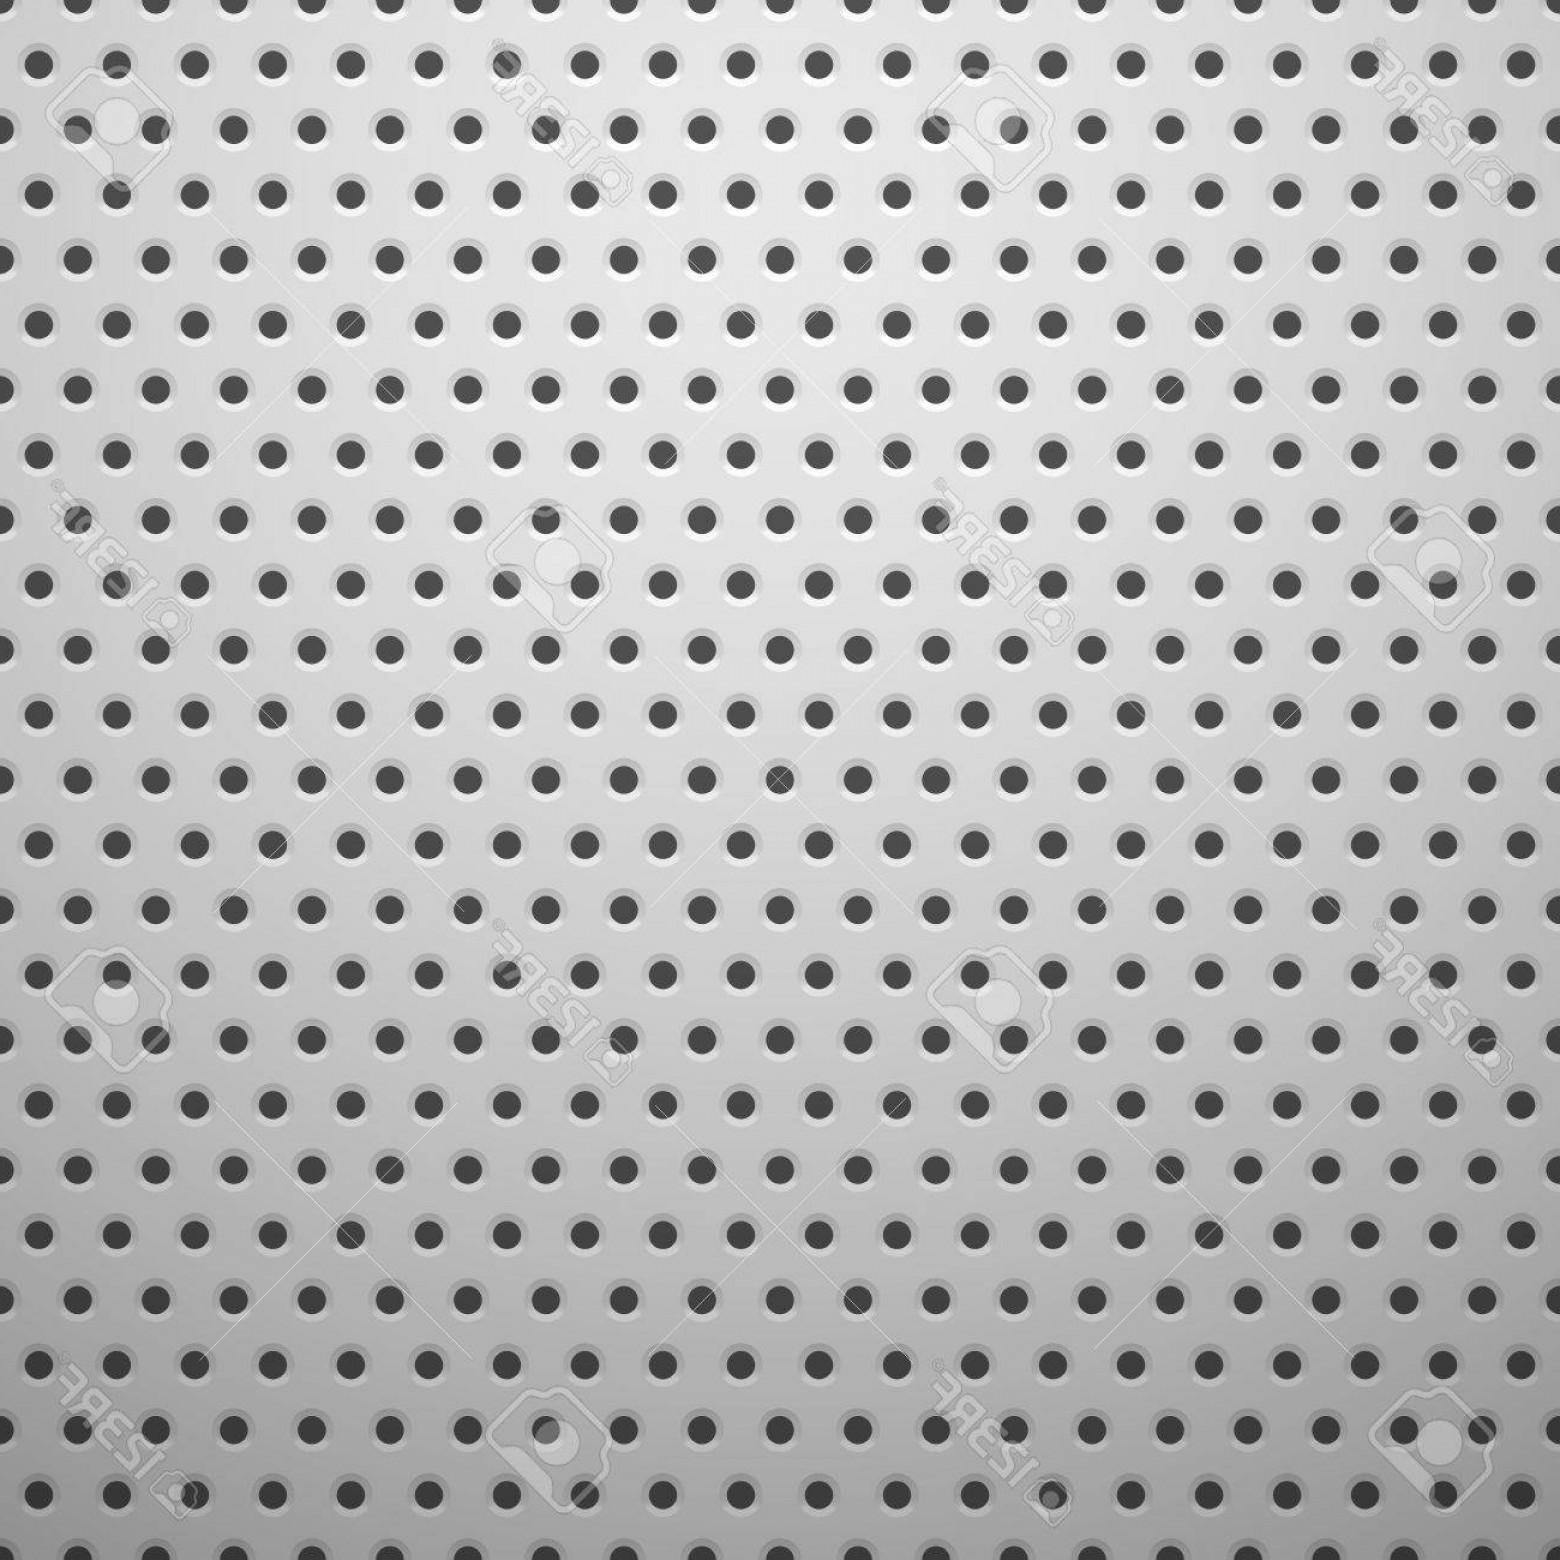 Sheet Metal Effect Vector: Photowhite Metal Texture With Holes Vector Background Illustration